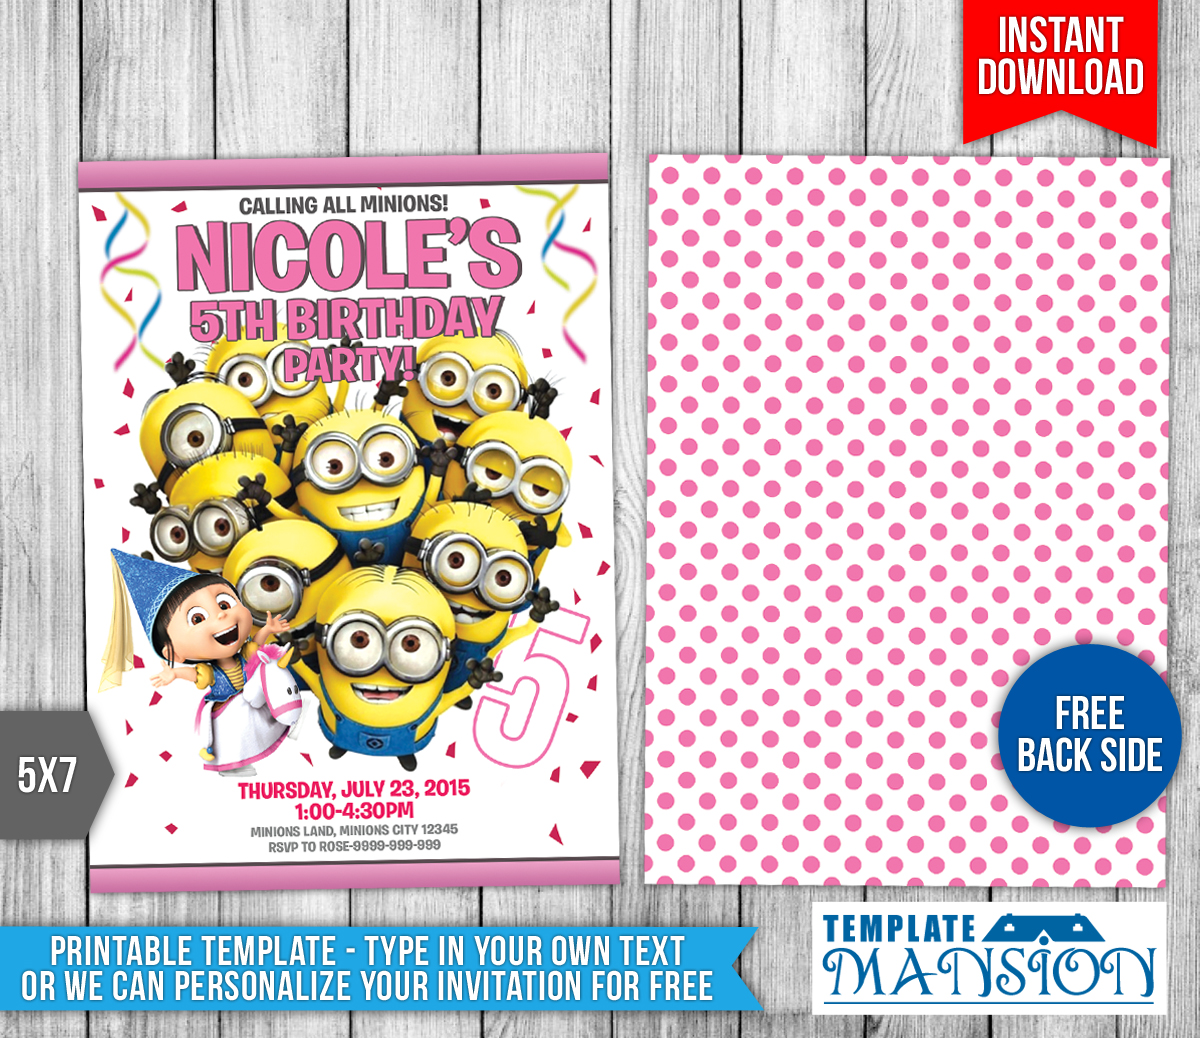 Minions Birthday Invitation Templates By Templatemansion On DeviantArt - Birthday invitation template minions